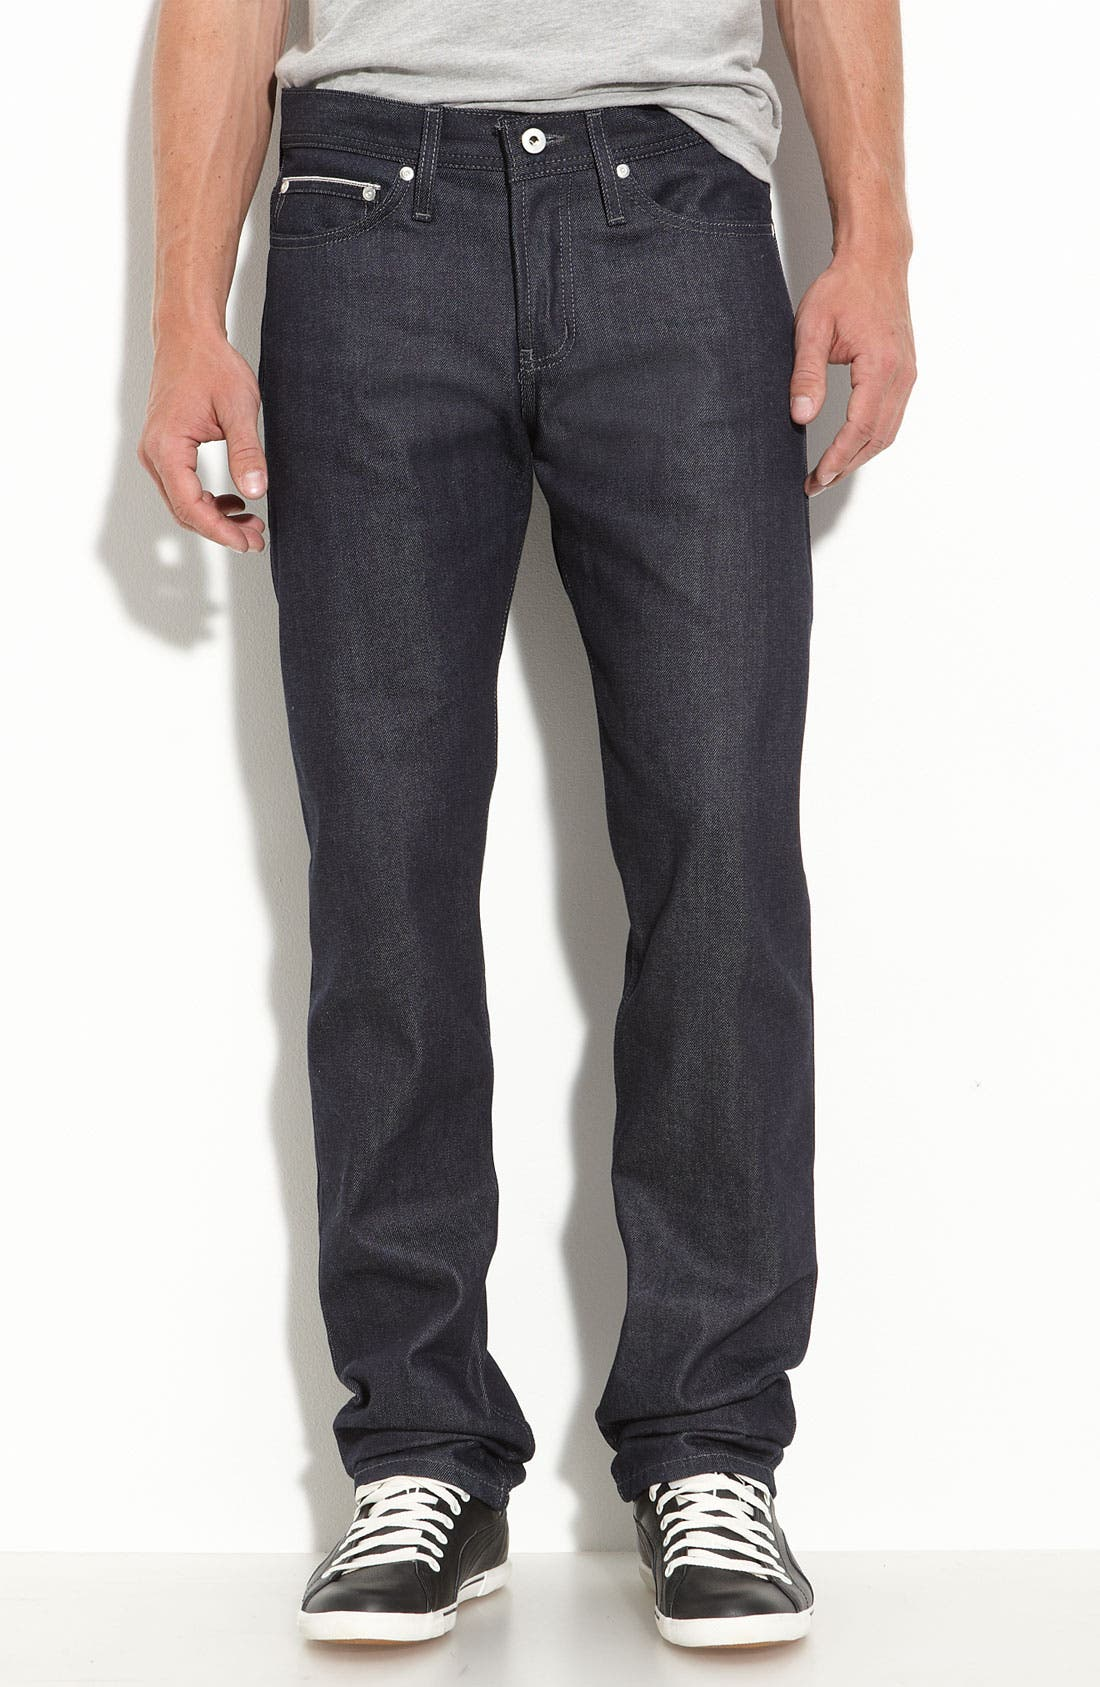 Alternate Image 1 Selected - Naked & Famous Denim 'Weird Guy' Slim Fit Selvedge Jeans (Indigo)